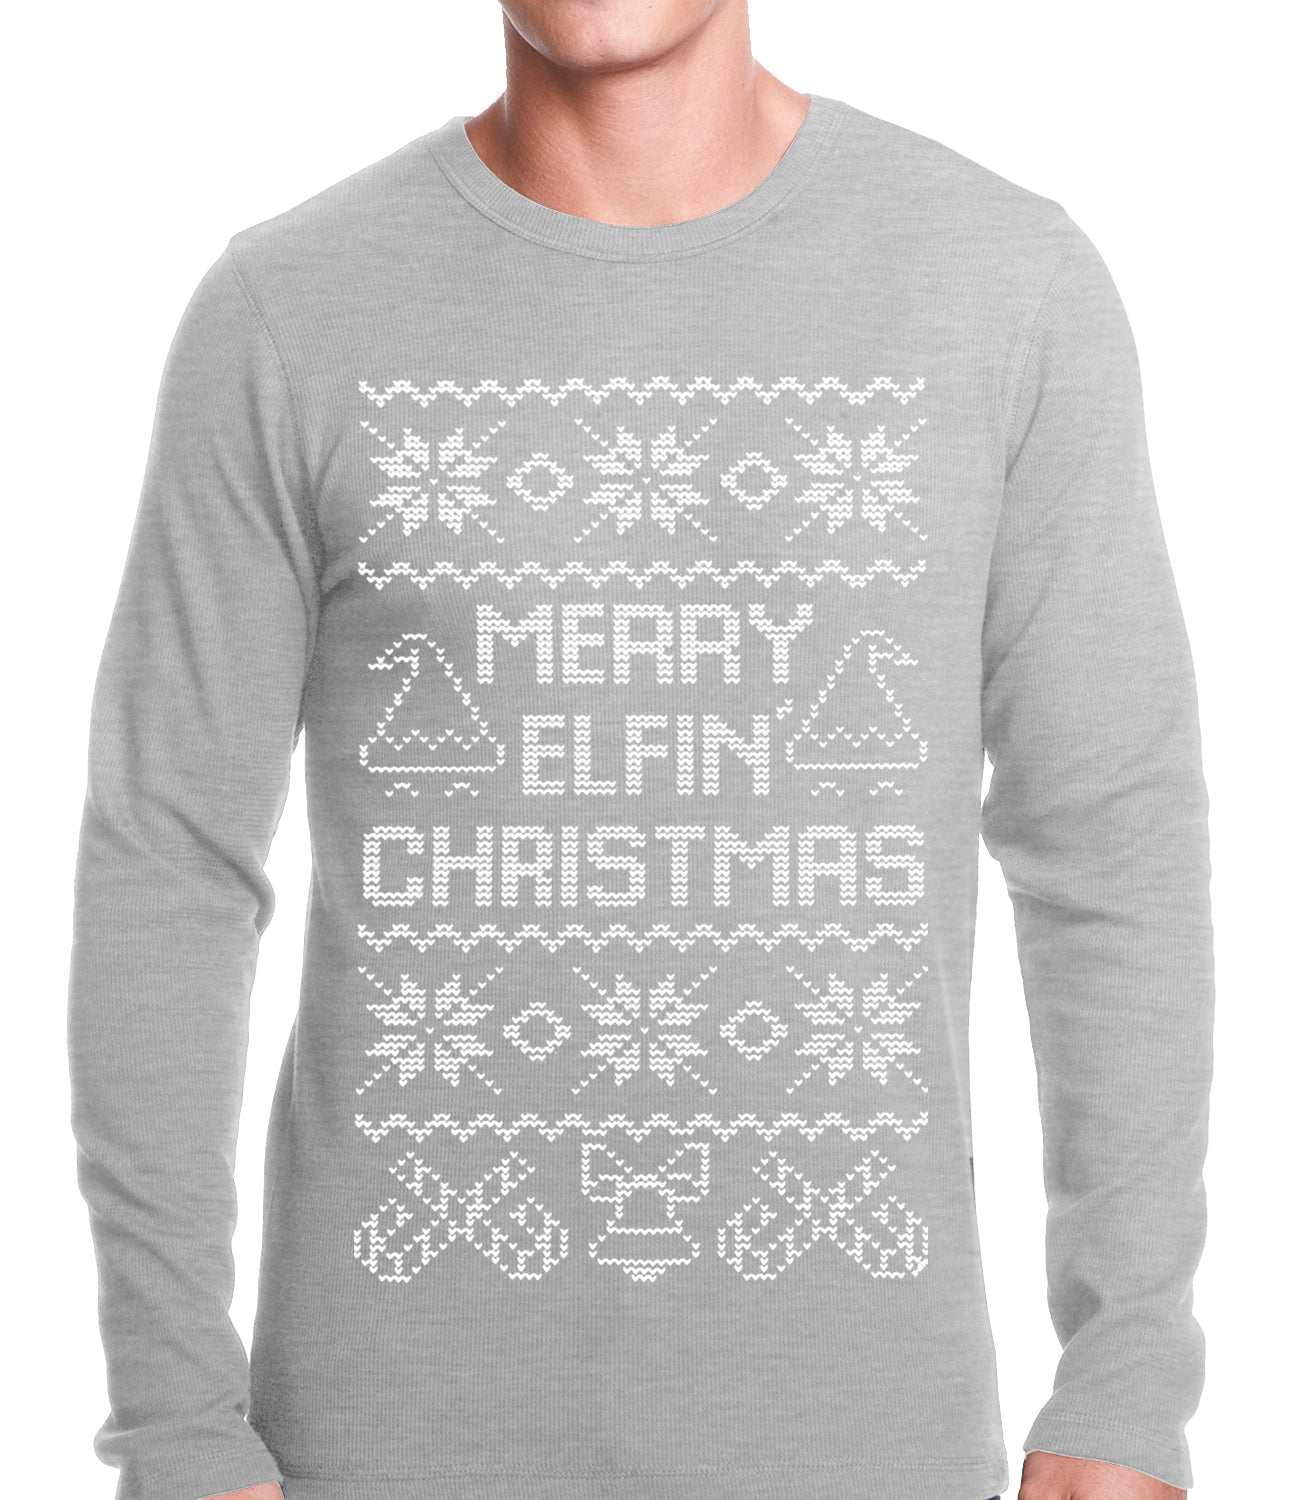 Ugly Christmas Thermal - Merry Elfin Christmas Funny Ugly Christmas Thermal Shirt